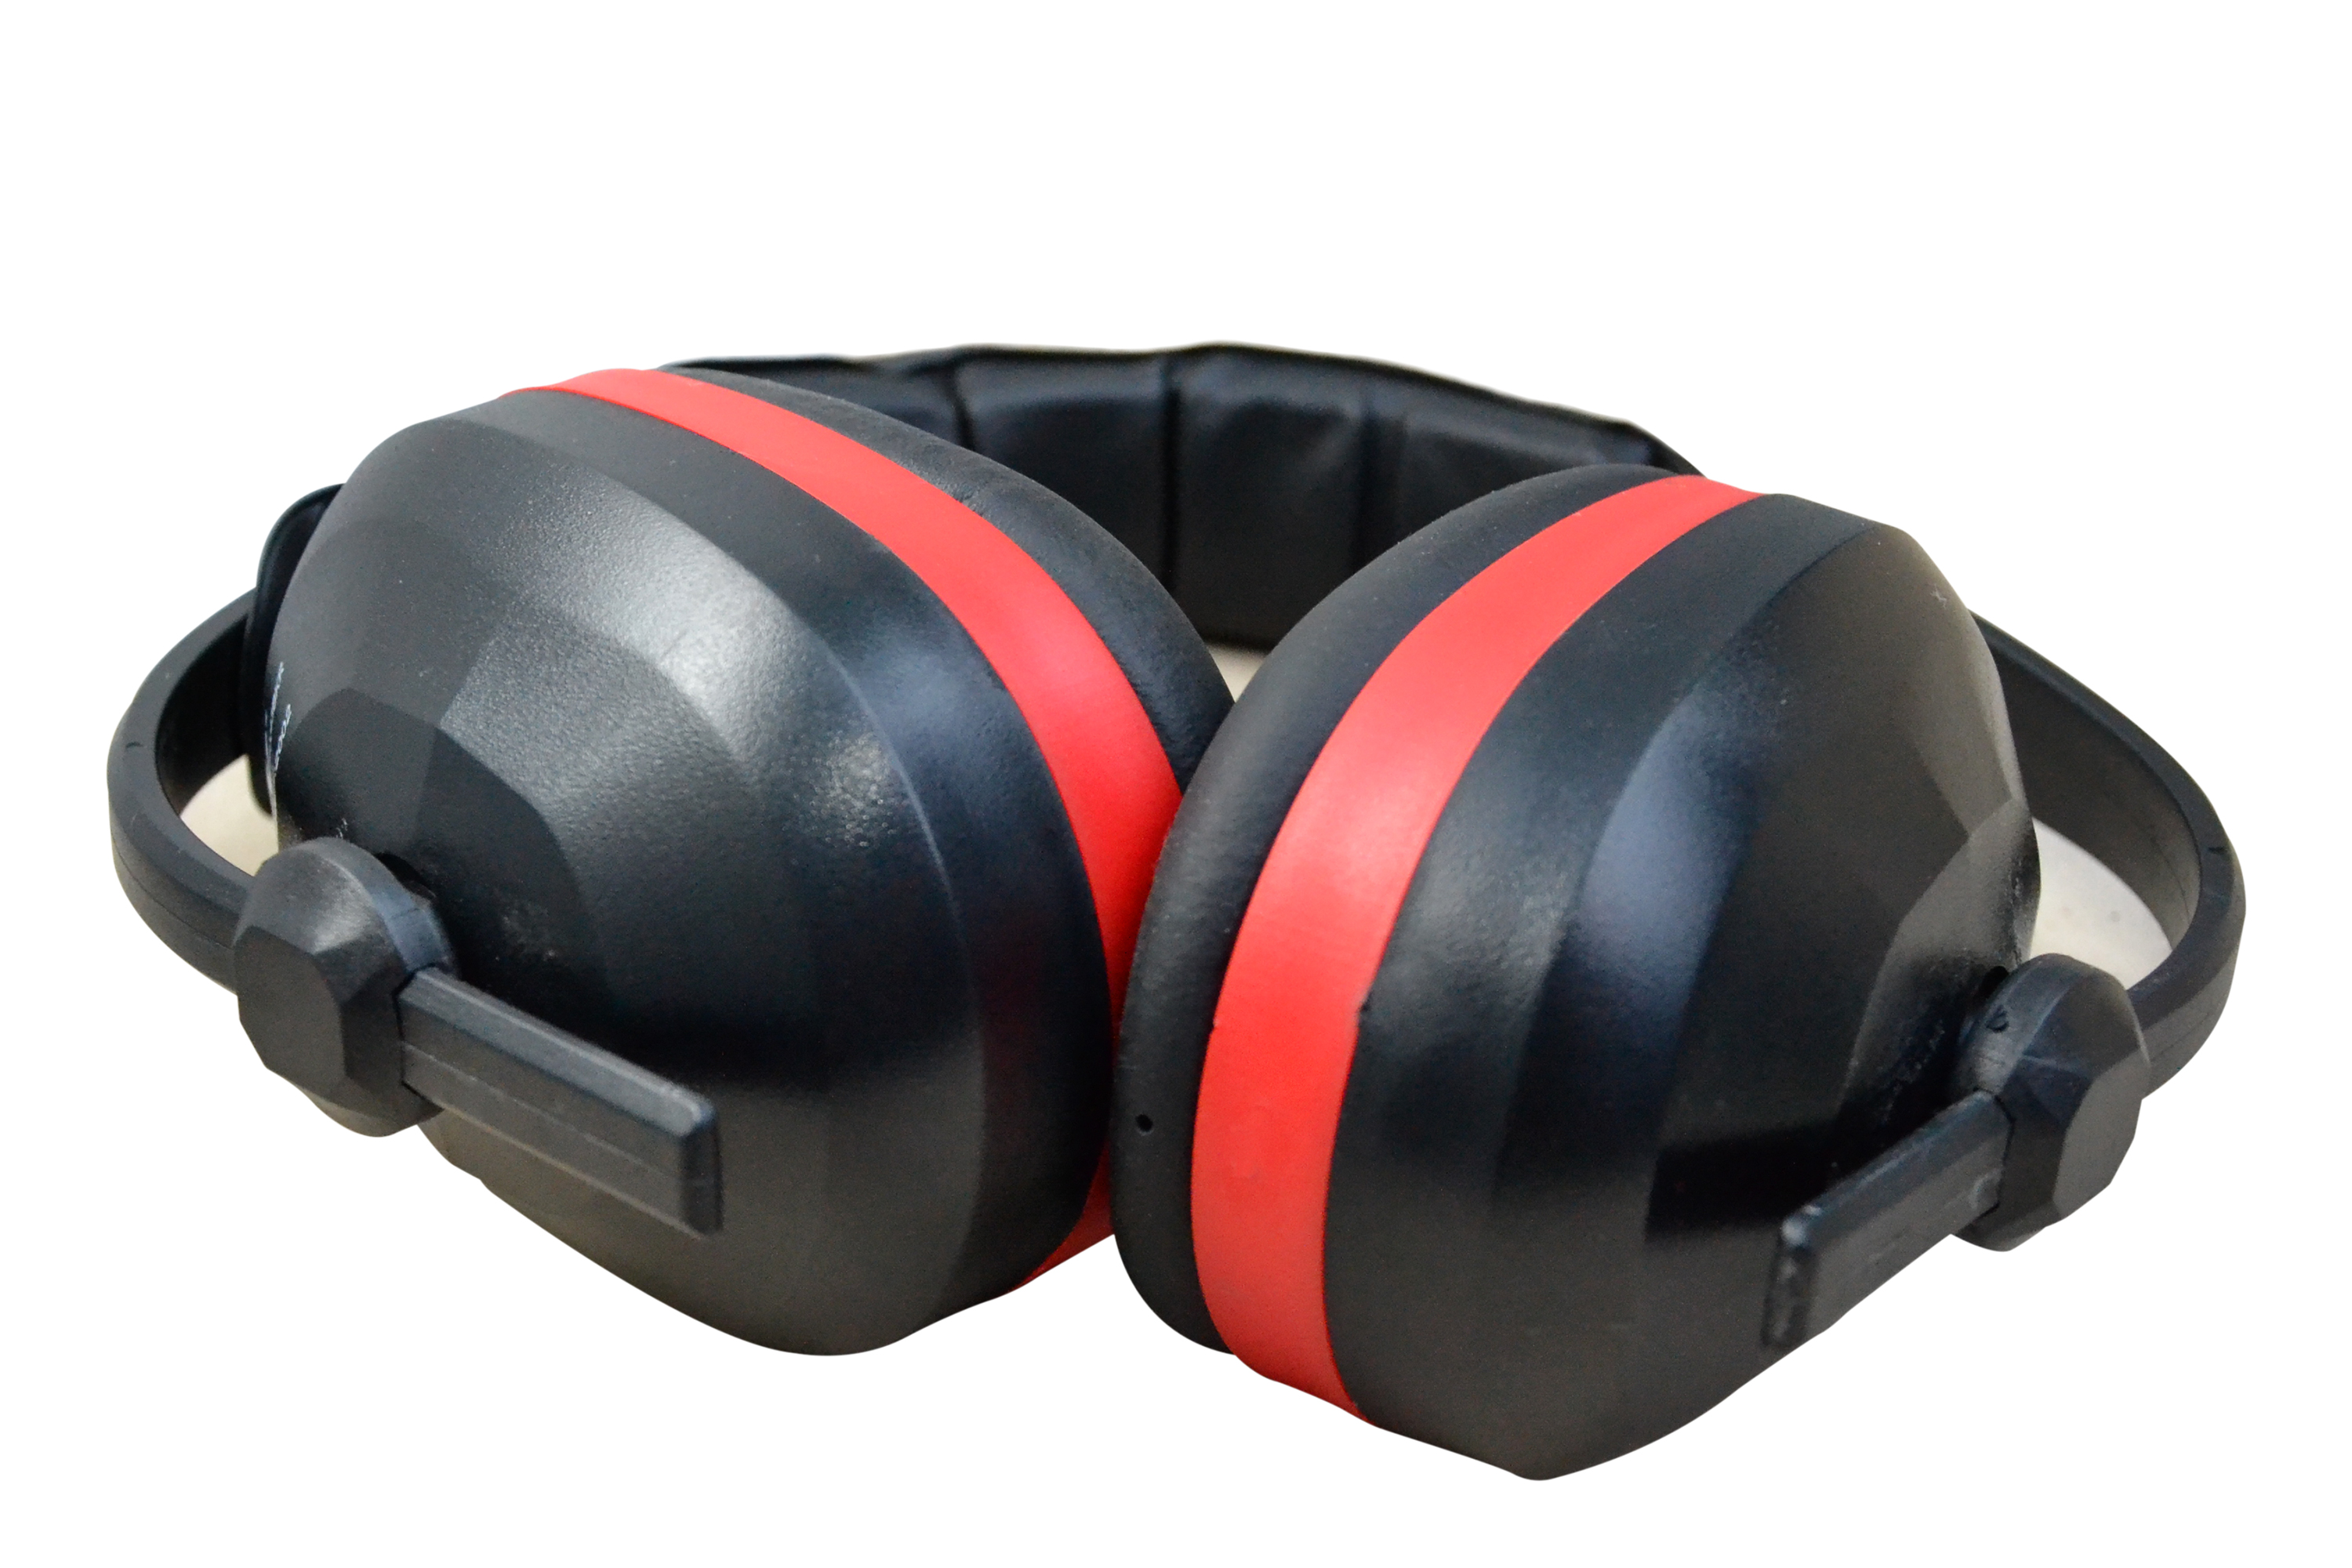 Earmuffs, Adjustable, Protective, Loud, Muffs, HQ Photo